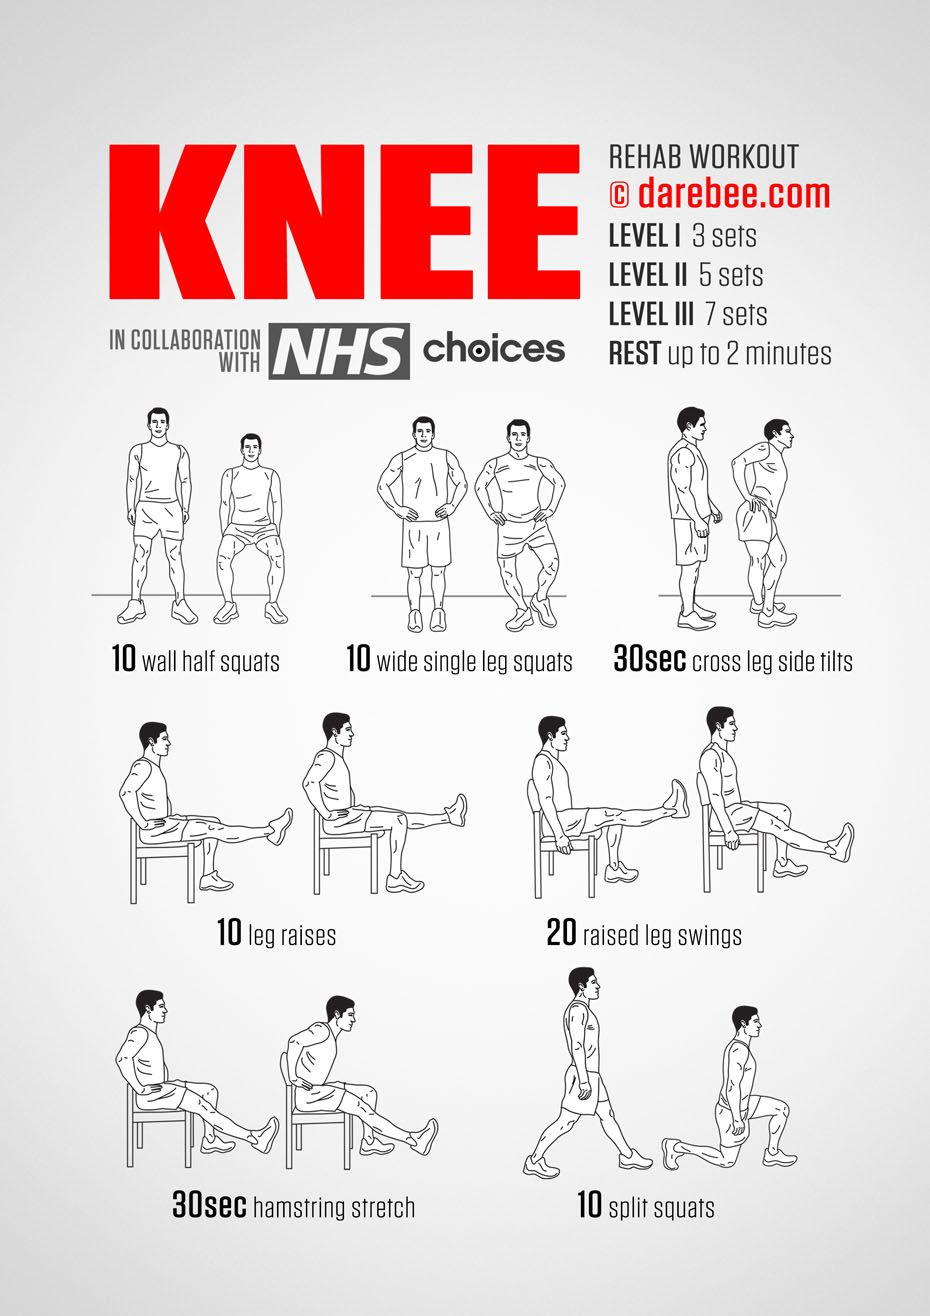 Knee Rehab Workout in 3 level, happy workout! Knee